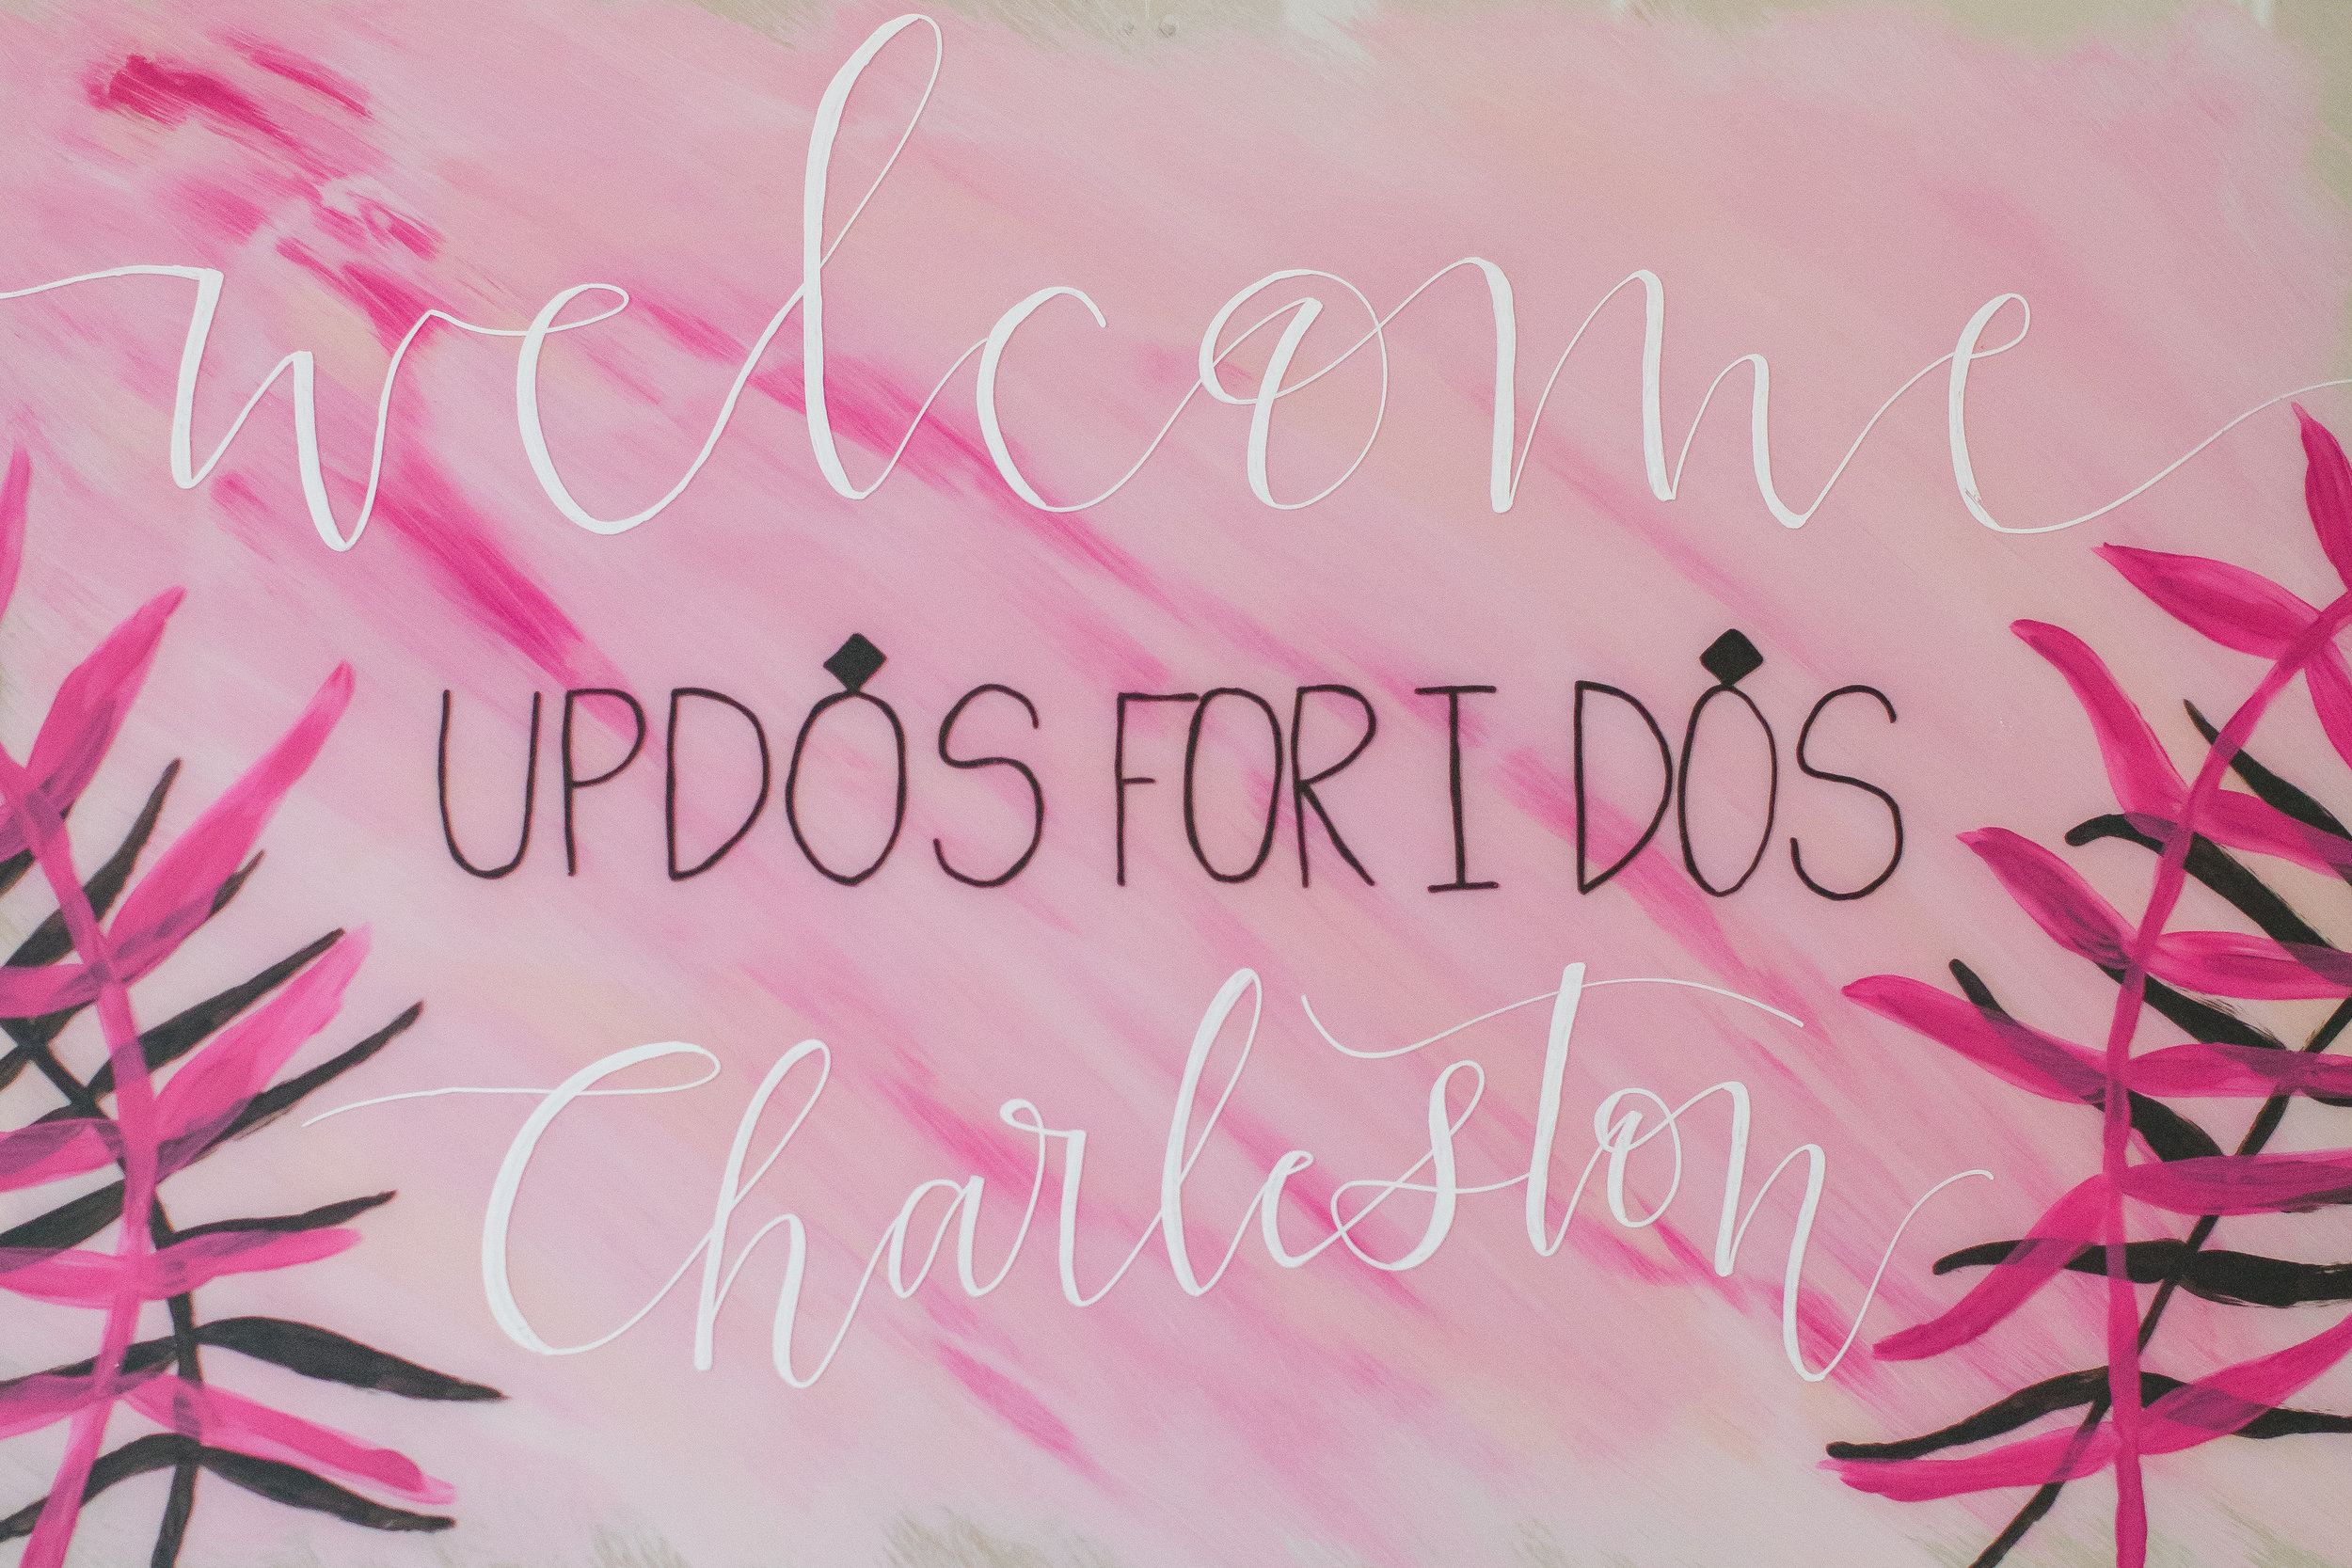 Up Dos For I Dos-0033.jpg